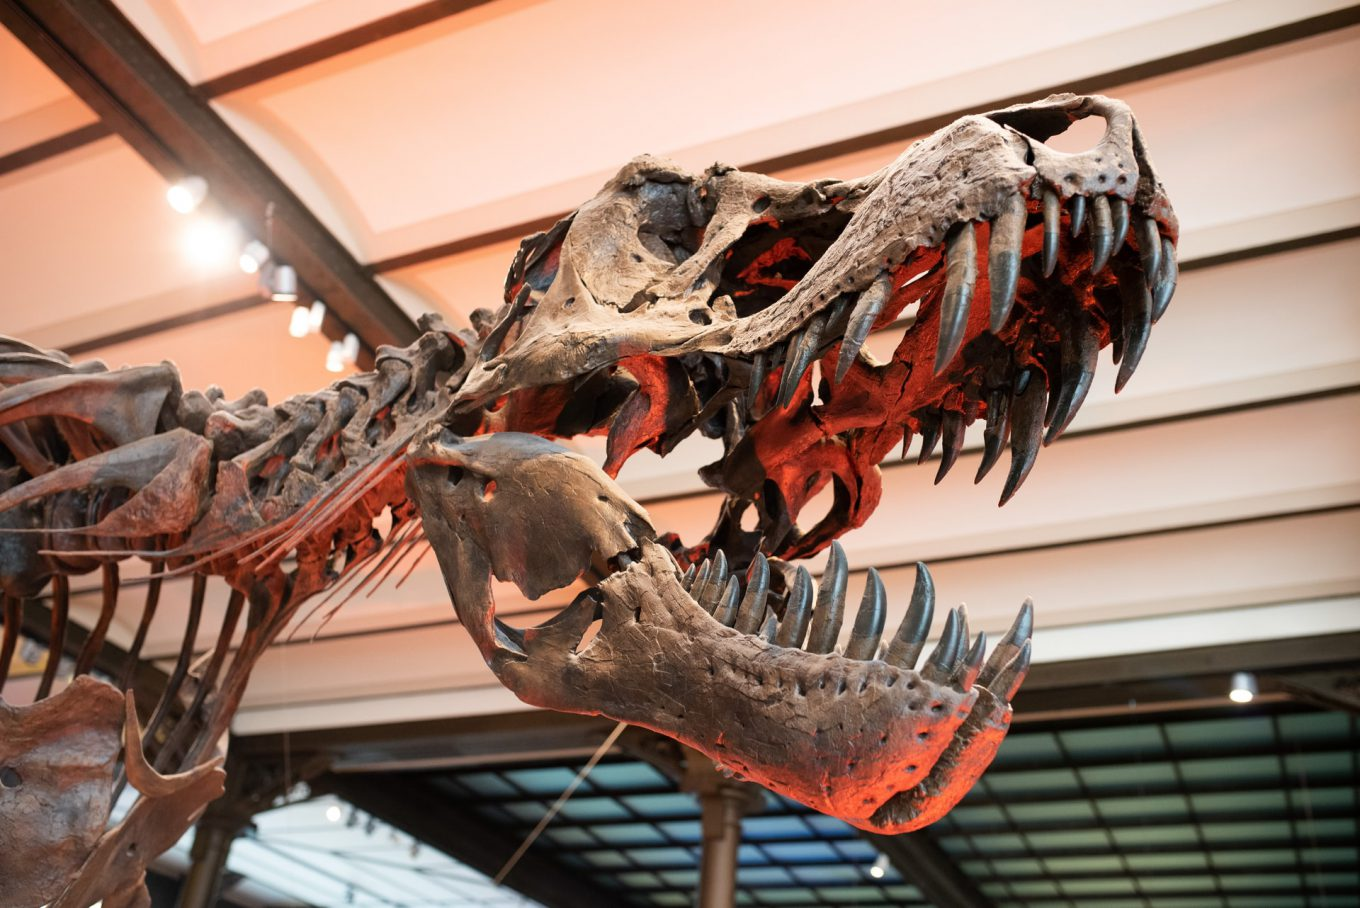 Discovering dinosaurs in Brussels